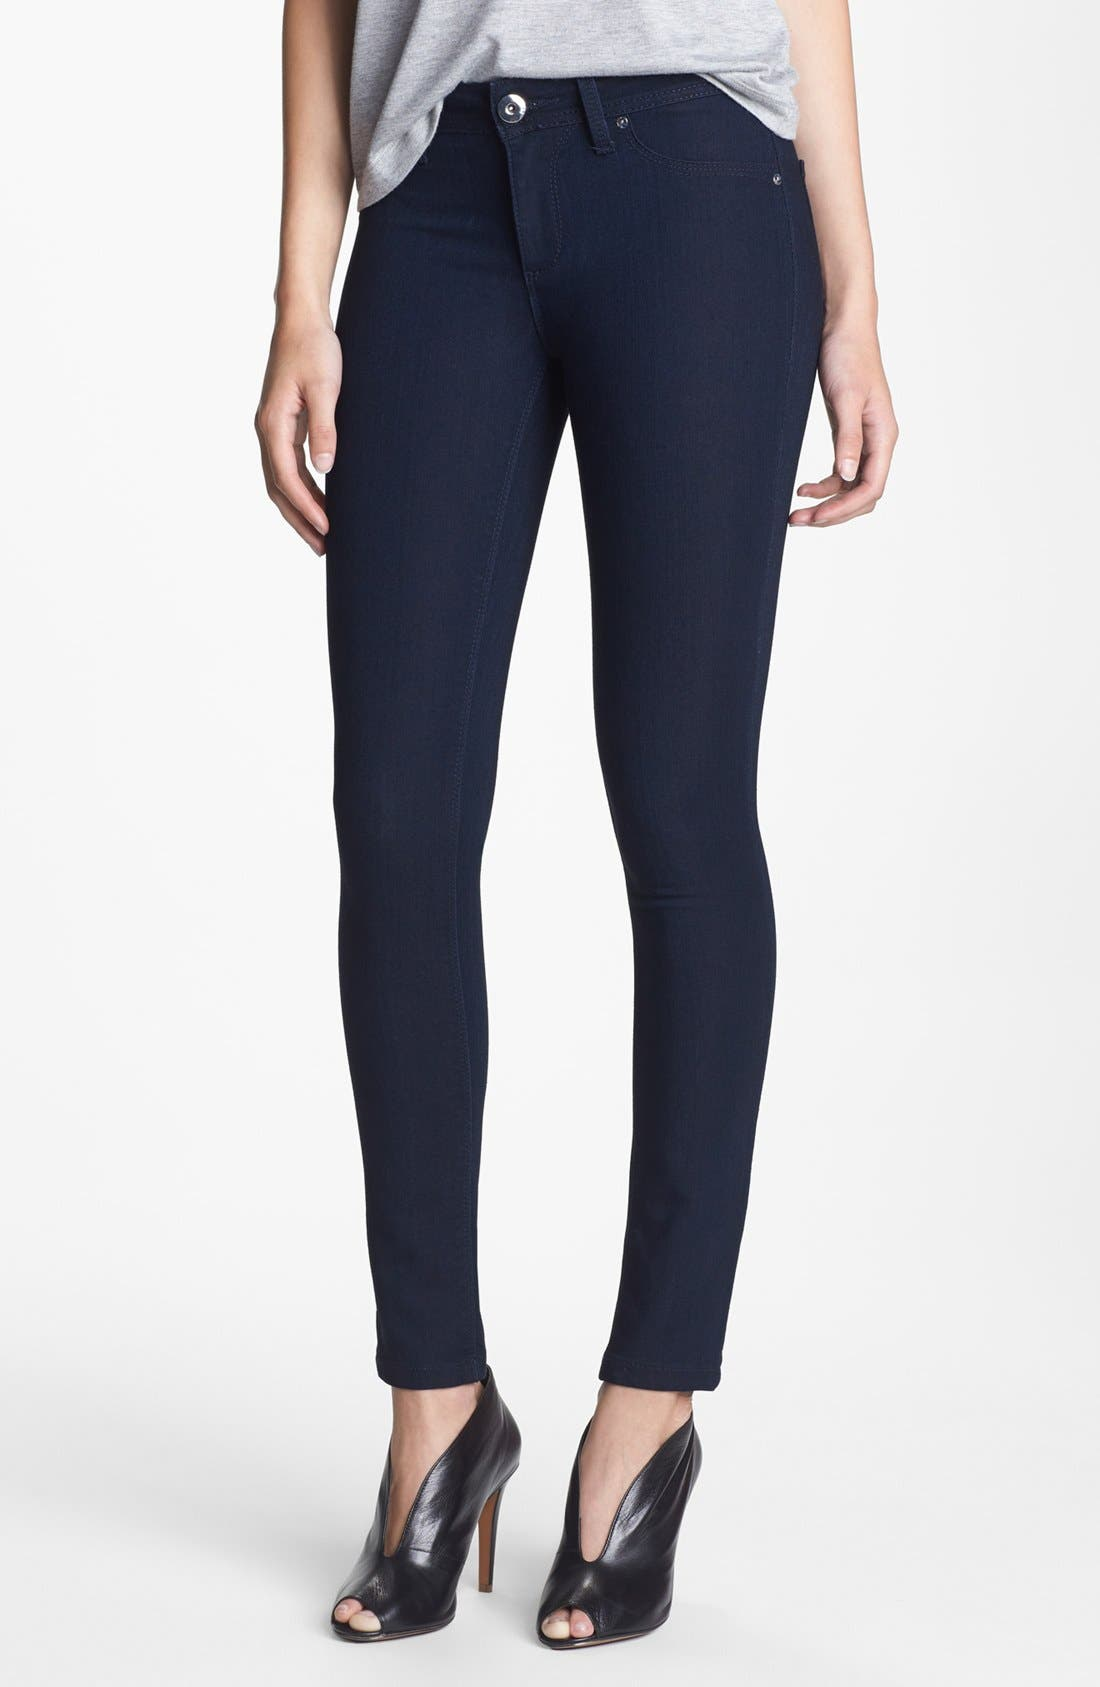 Image of DL1961 Emma Solid Low Rise Skinny Jeans